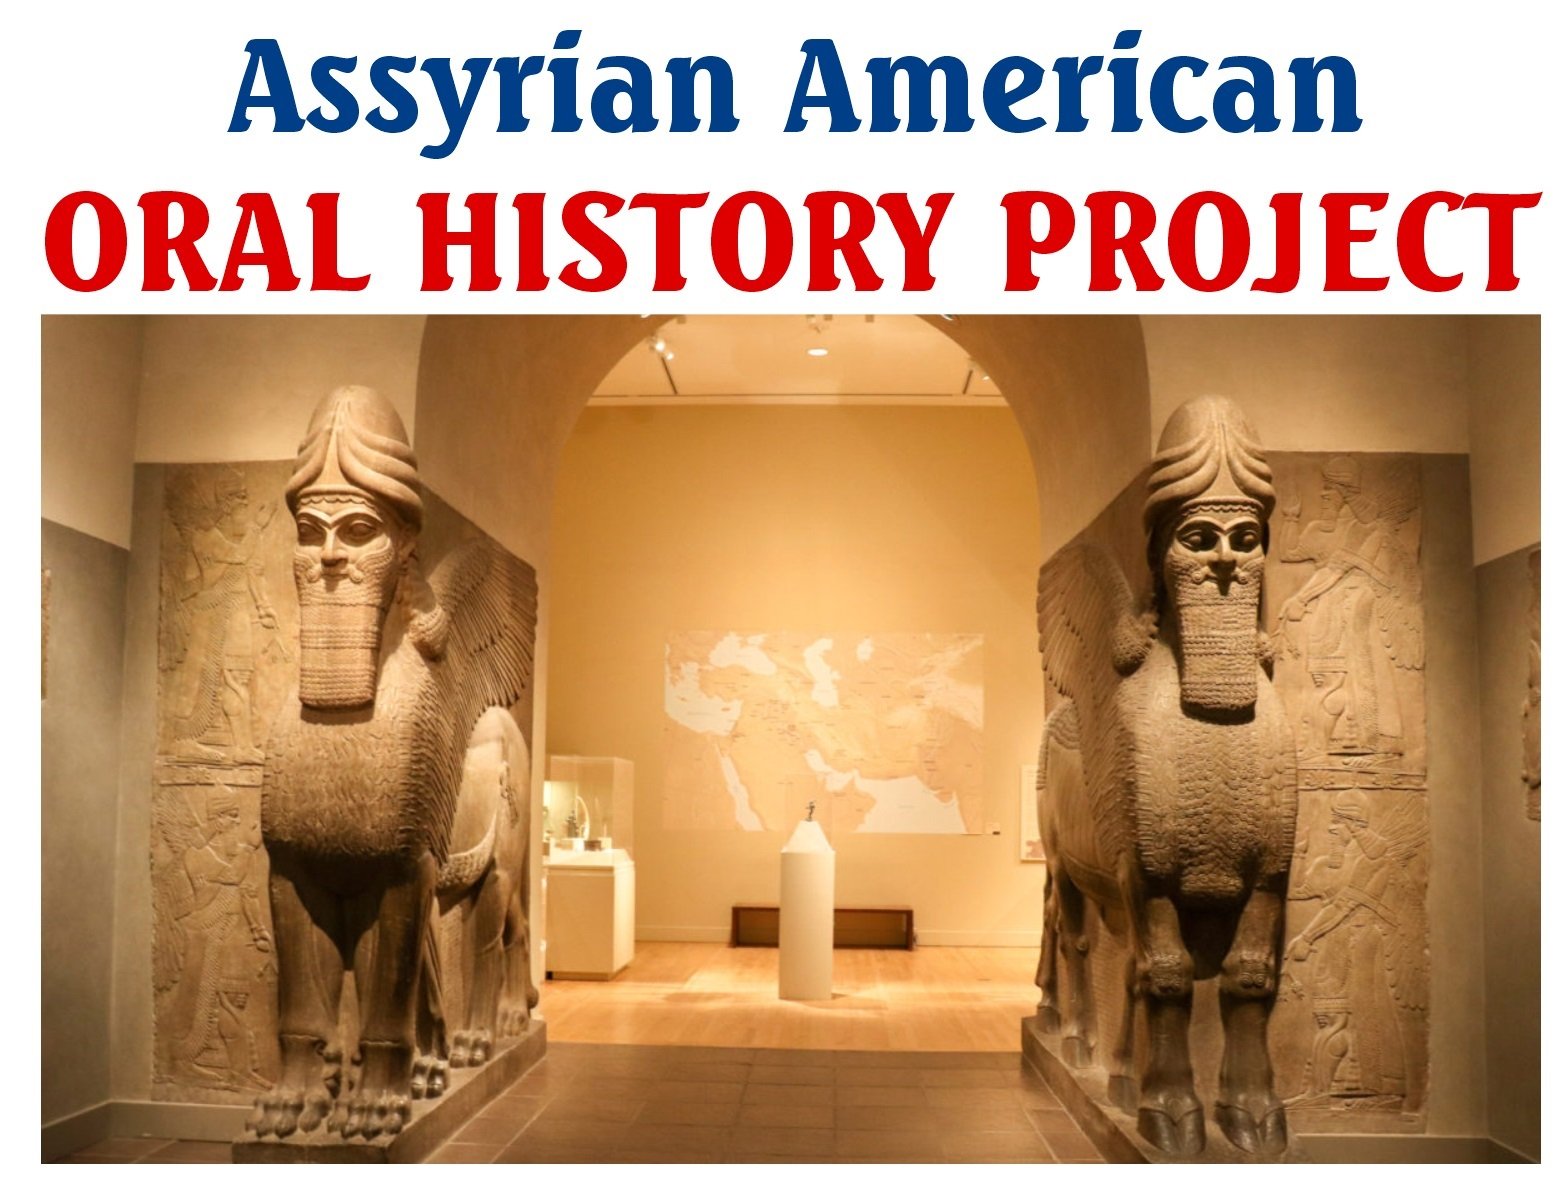 Assyrian American Oral History Project